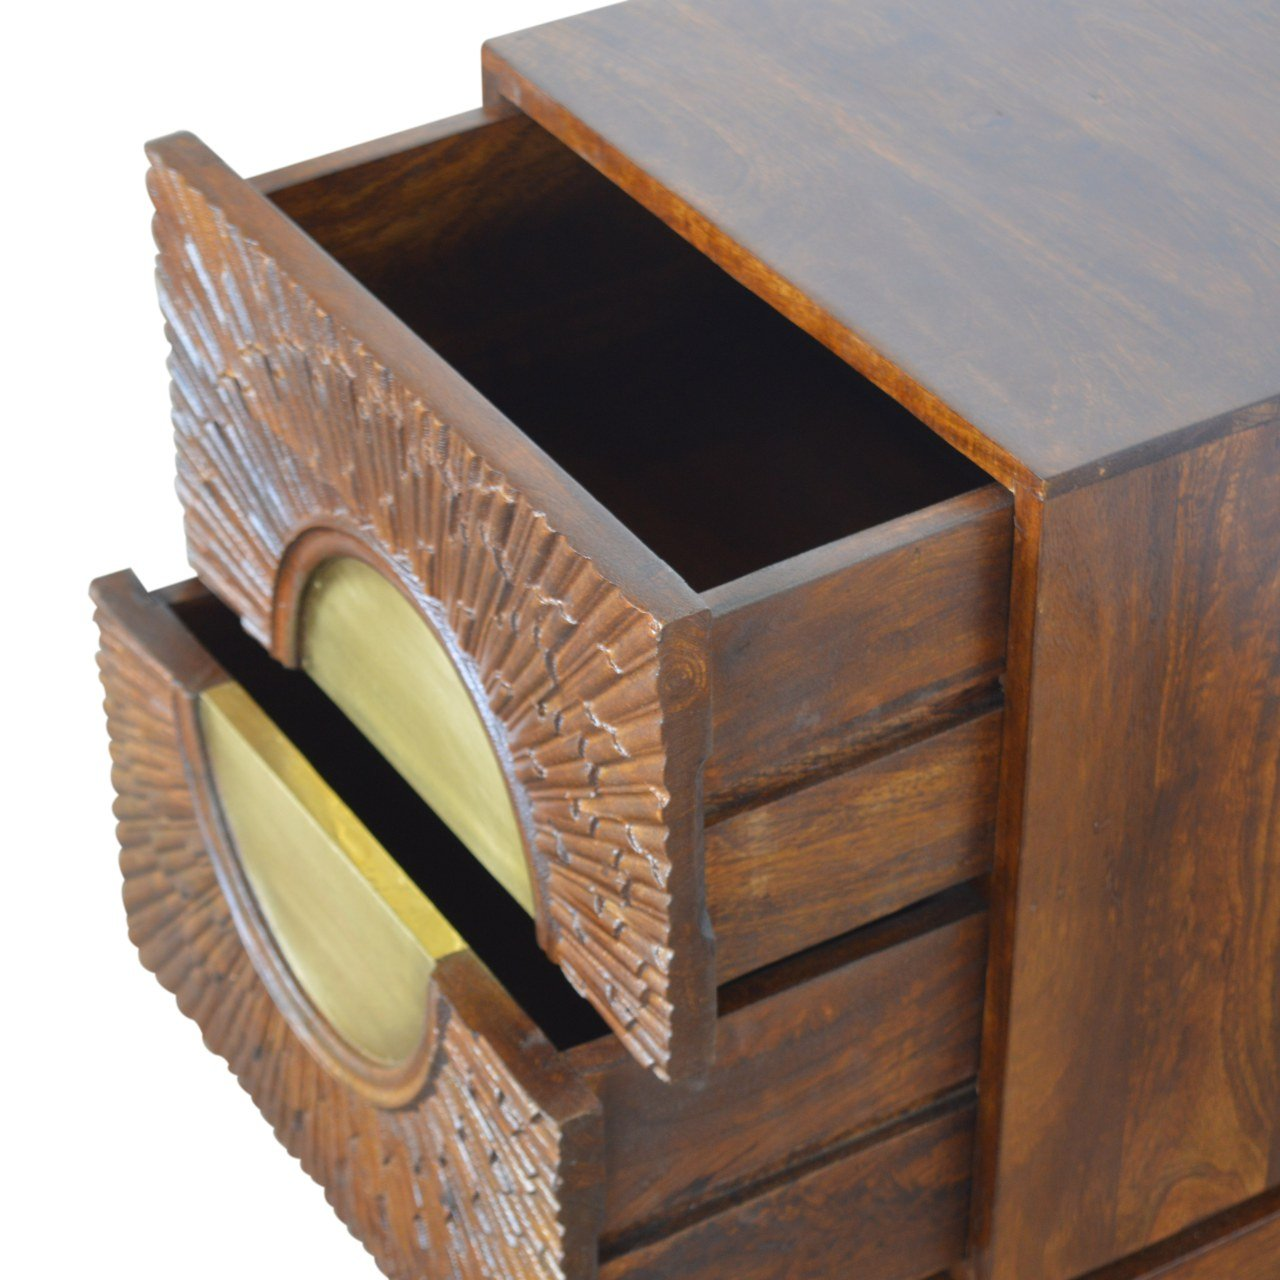 Sunburst Chestnut Brass 2 Drawer Bedside Table Eco Sustainable 100% Solid Mango Wood